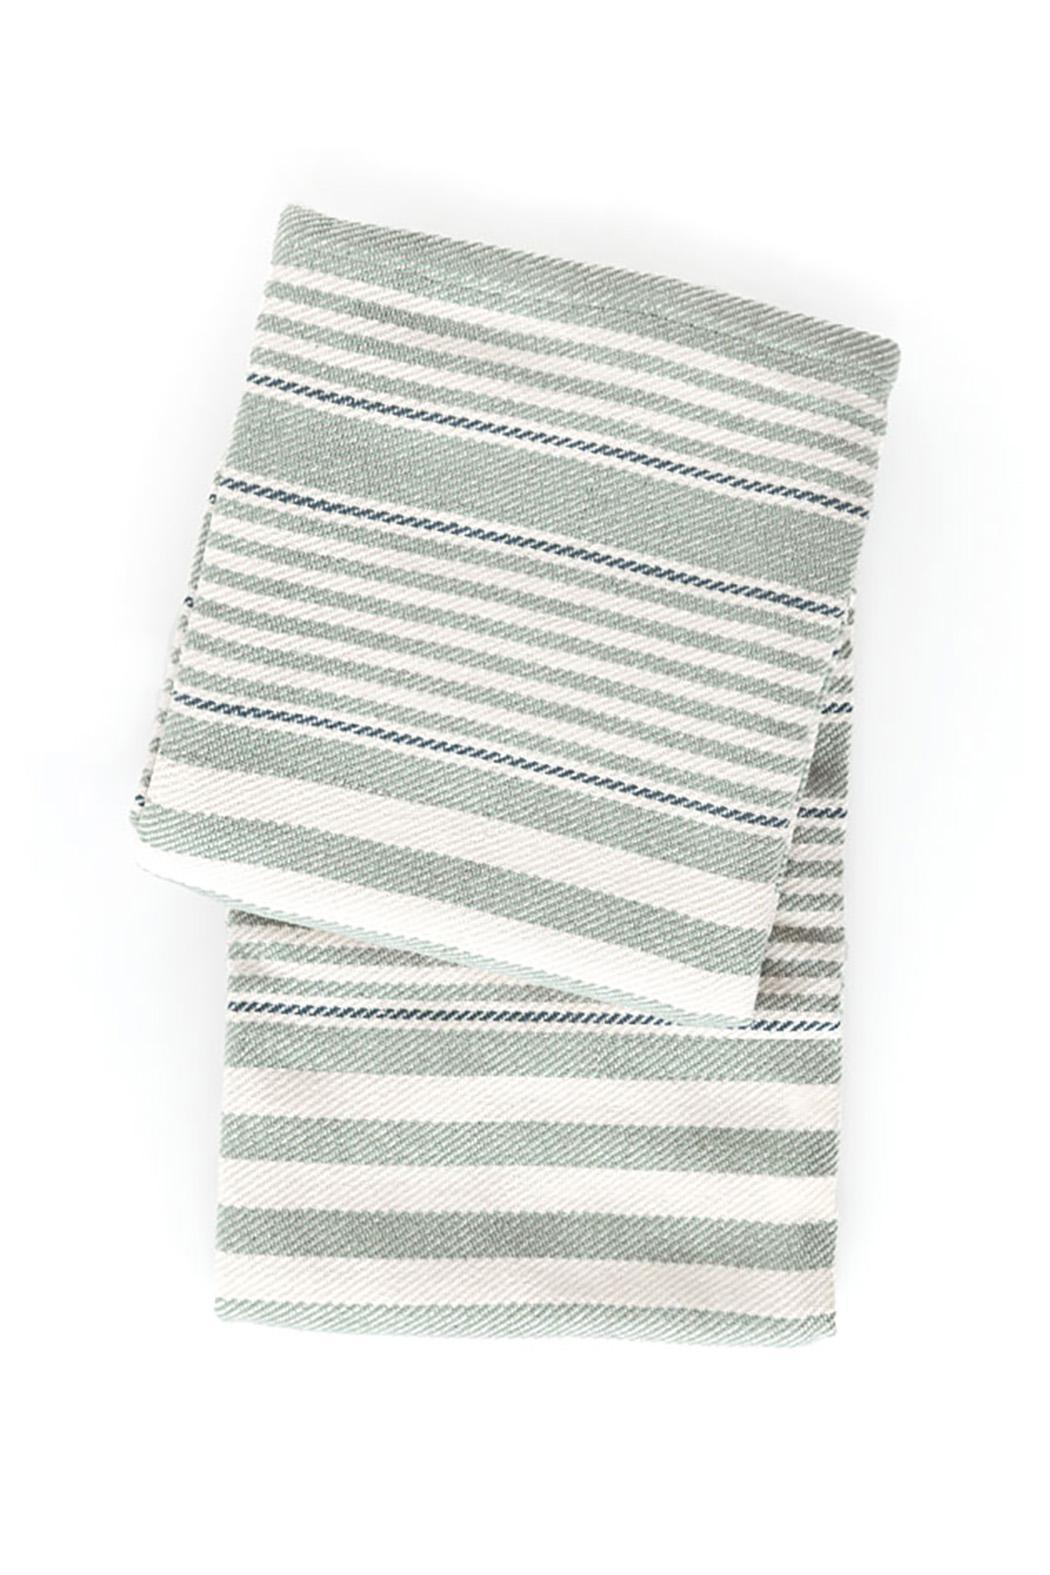 Dash and albert rugby stripe light blue throw from florida for Dash and albert blanket